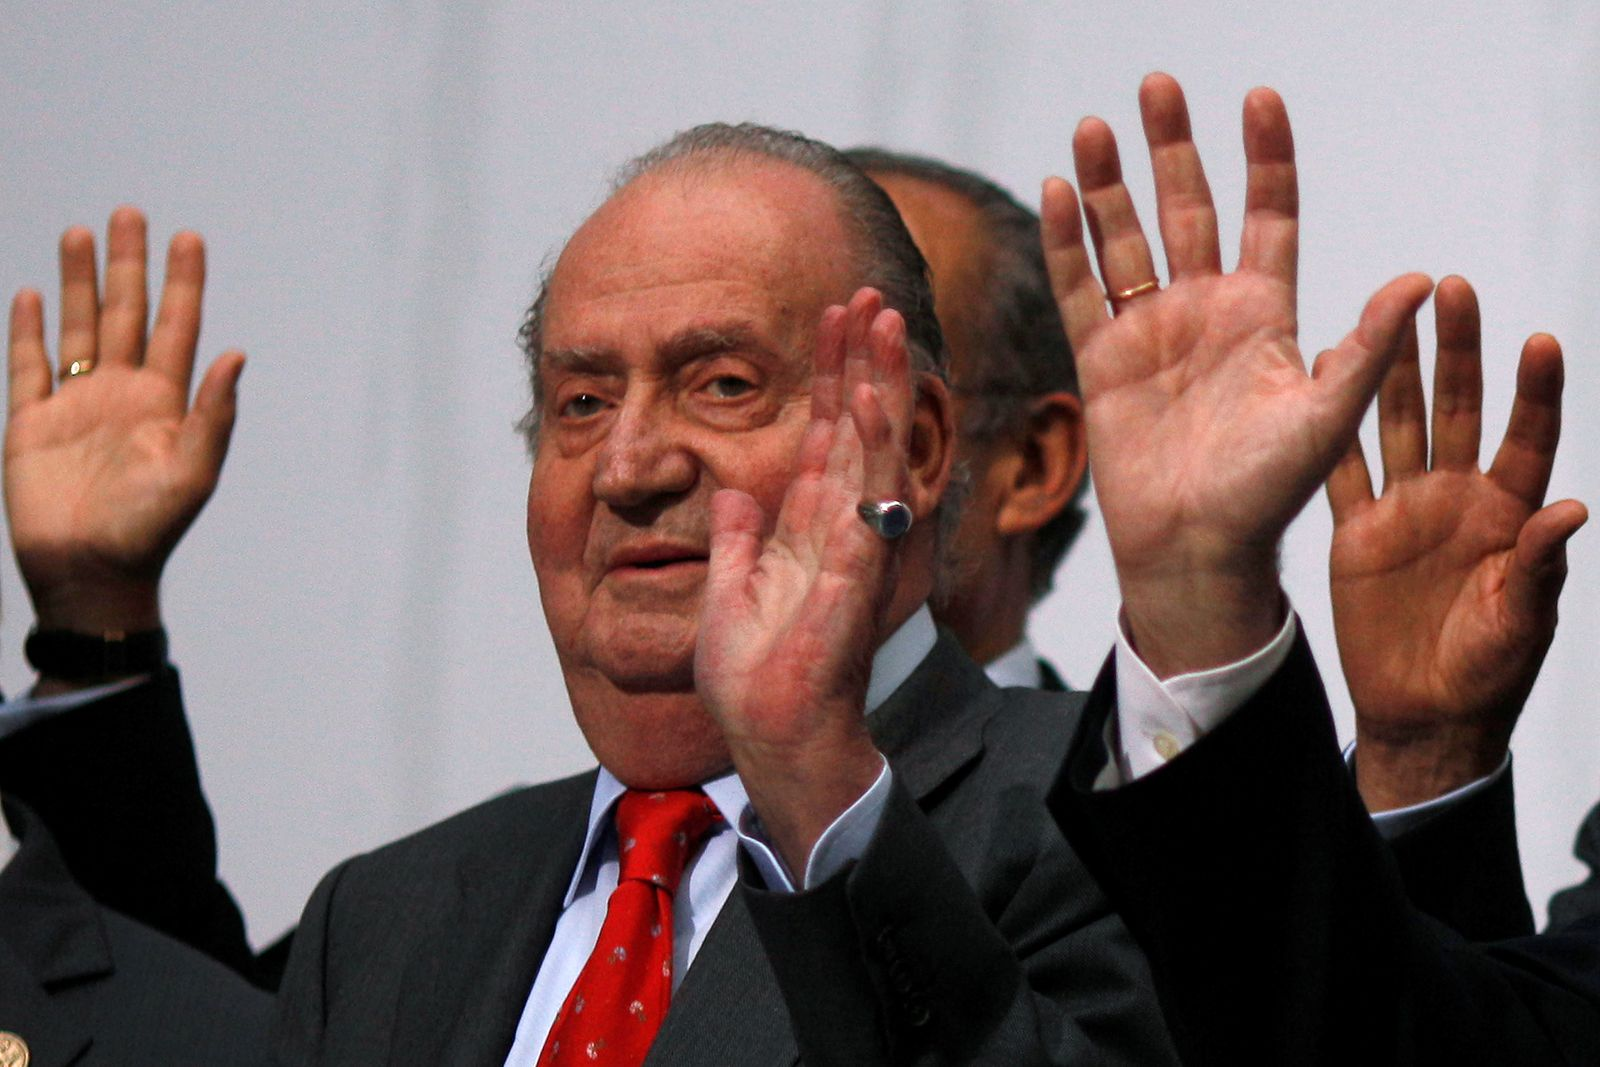 FILE PHOTO: Spanish King Juan Carlos waves during a group photo with Ibero-American leaders during the Ibero-American Summit in Cadiz